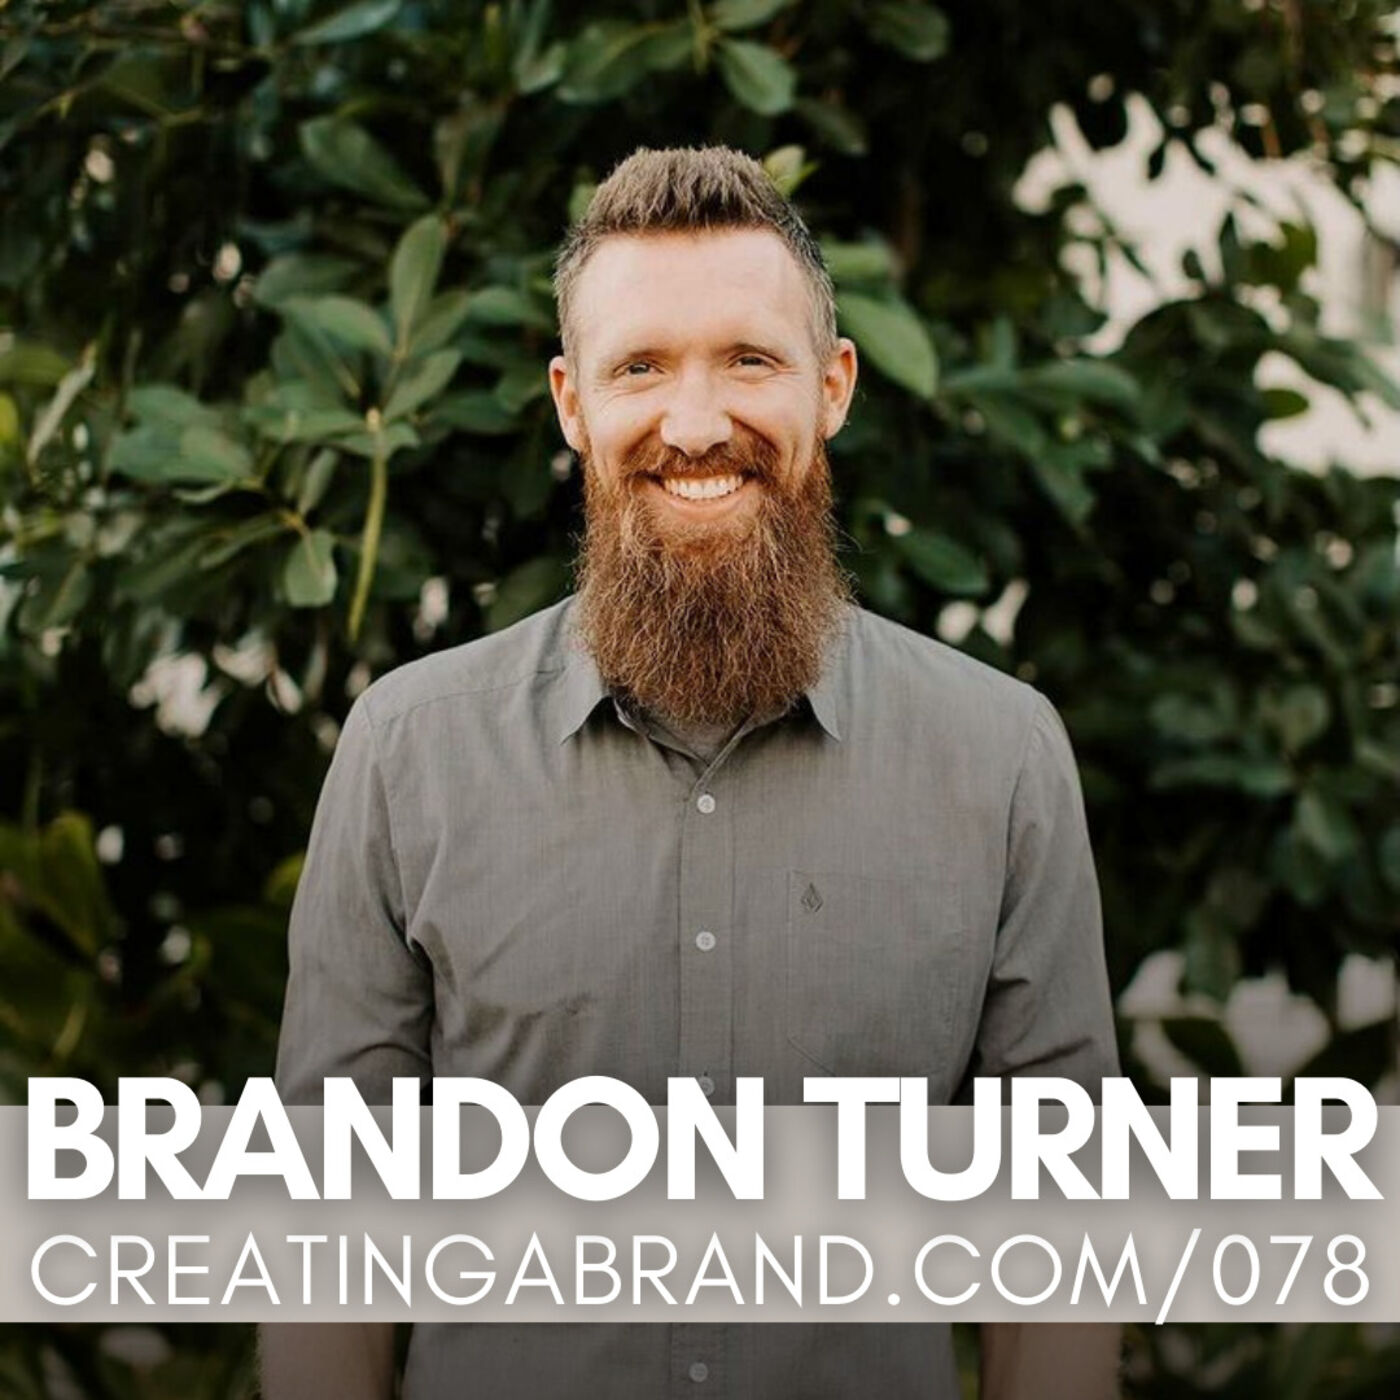 How to Achieve Your Goals Faster with Brandon Turner